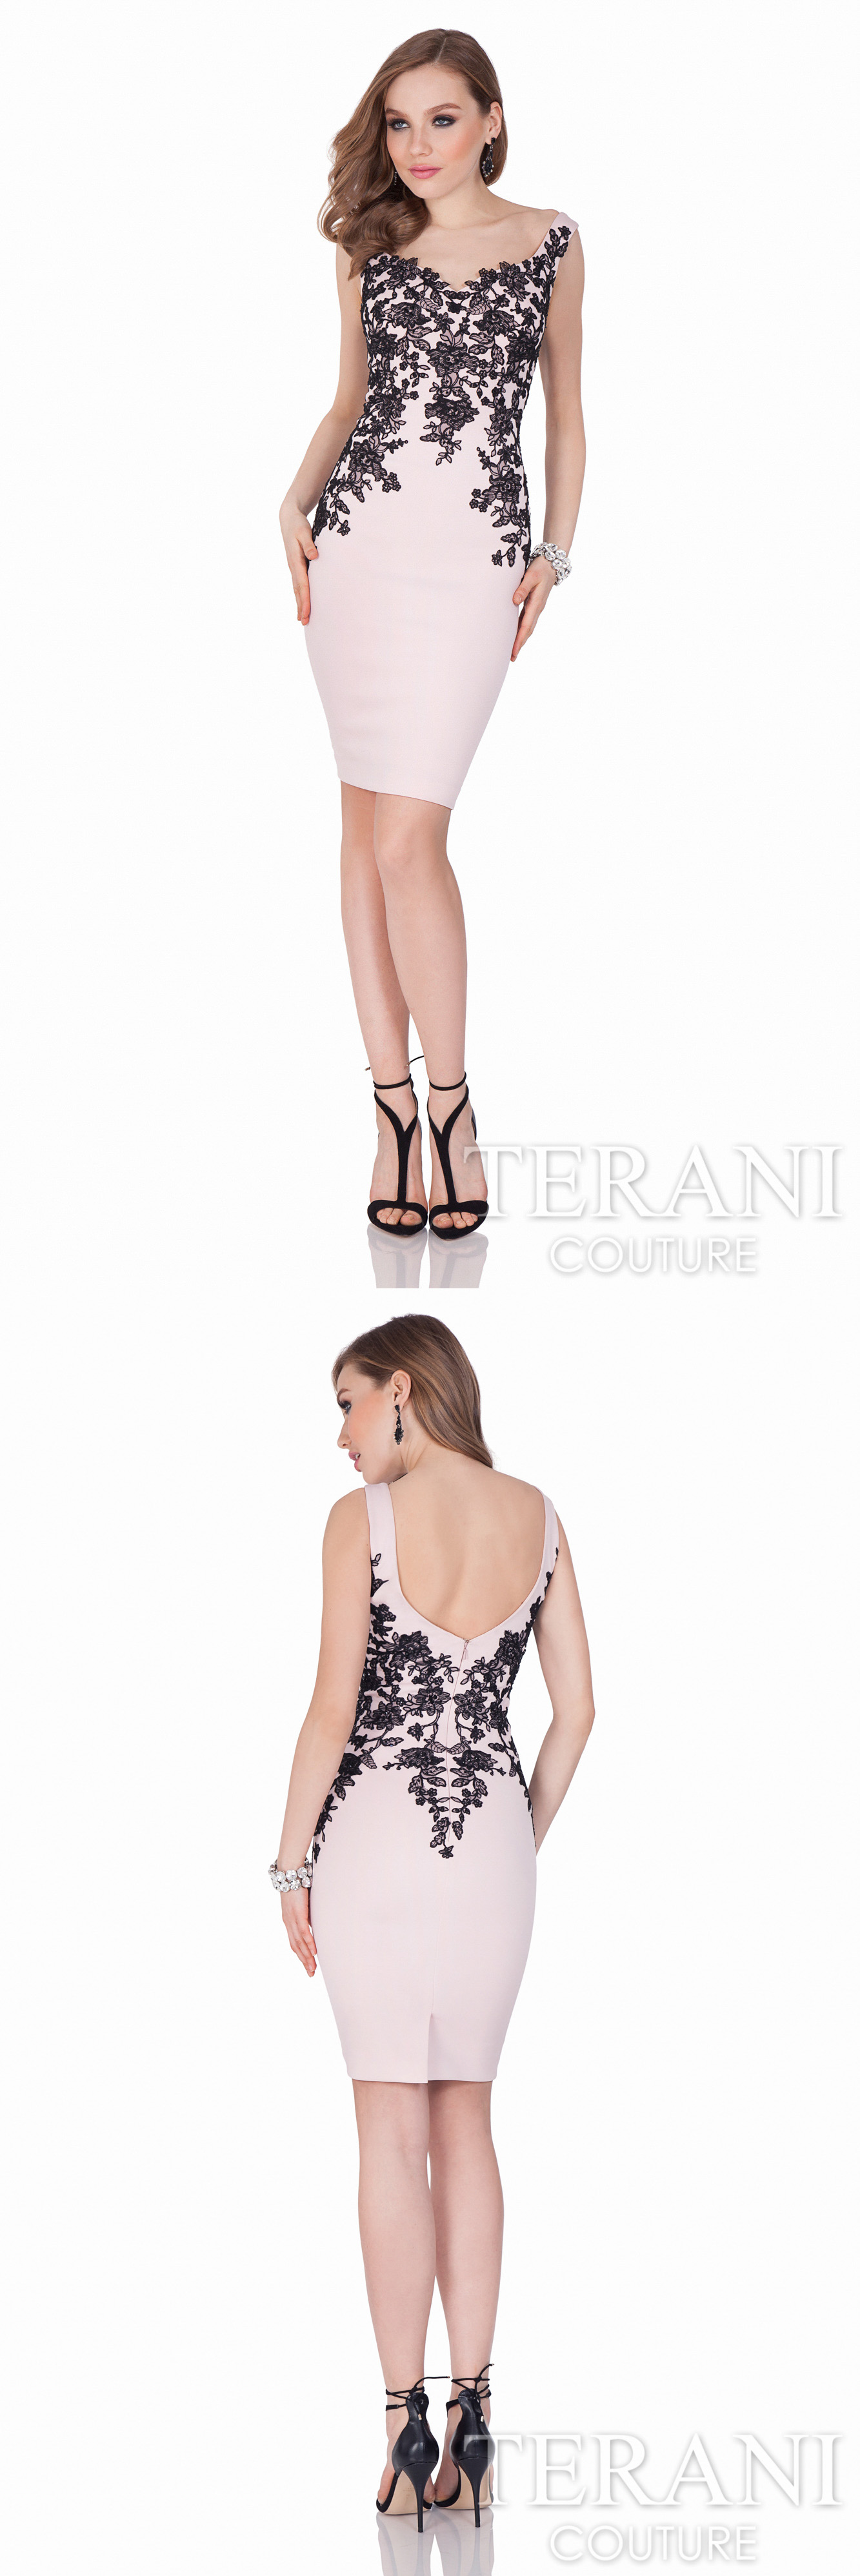 Terani Couture stunning #twopiece #cocktaildress in beaded lace ...